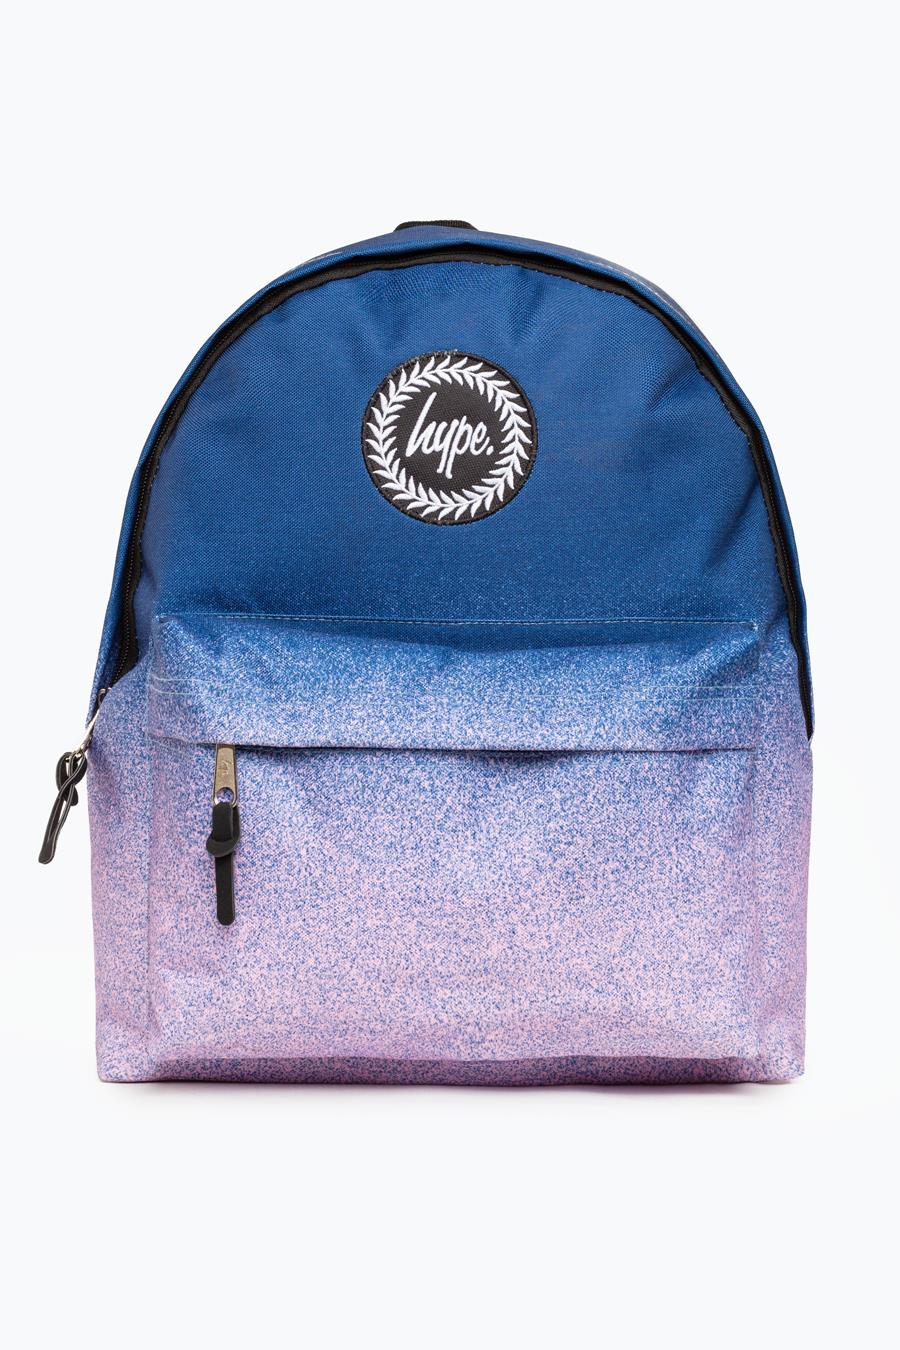 genuine shoes cost charm united kingdom HYPE BELL SPECKLE FADE BACKPACK | Justhype ltd